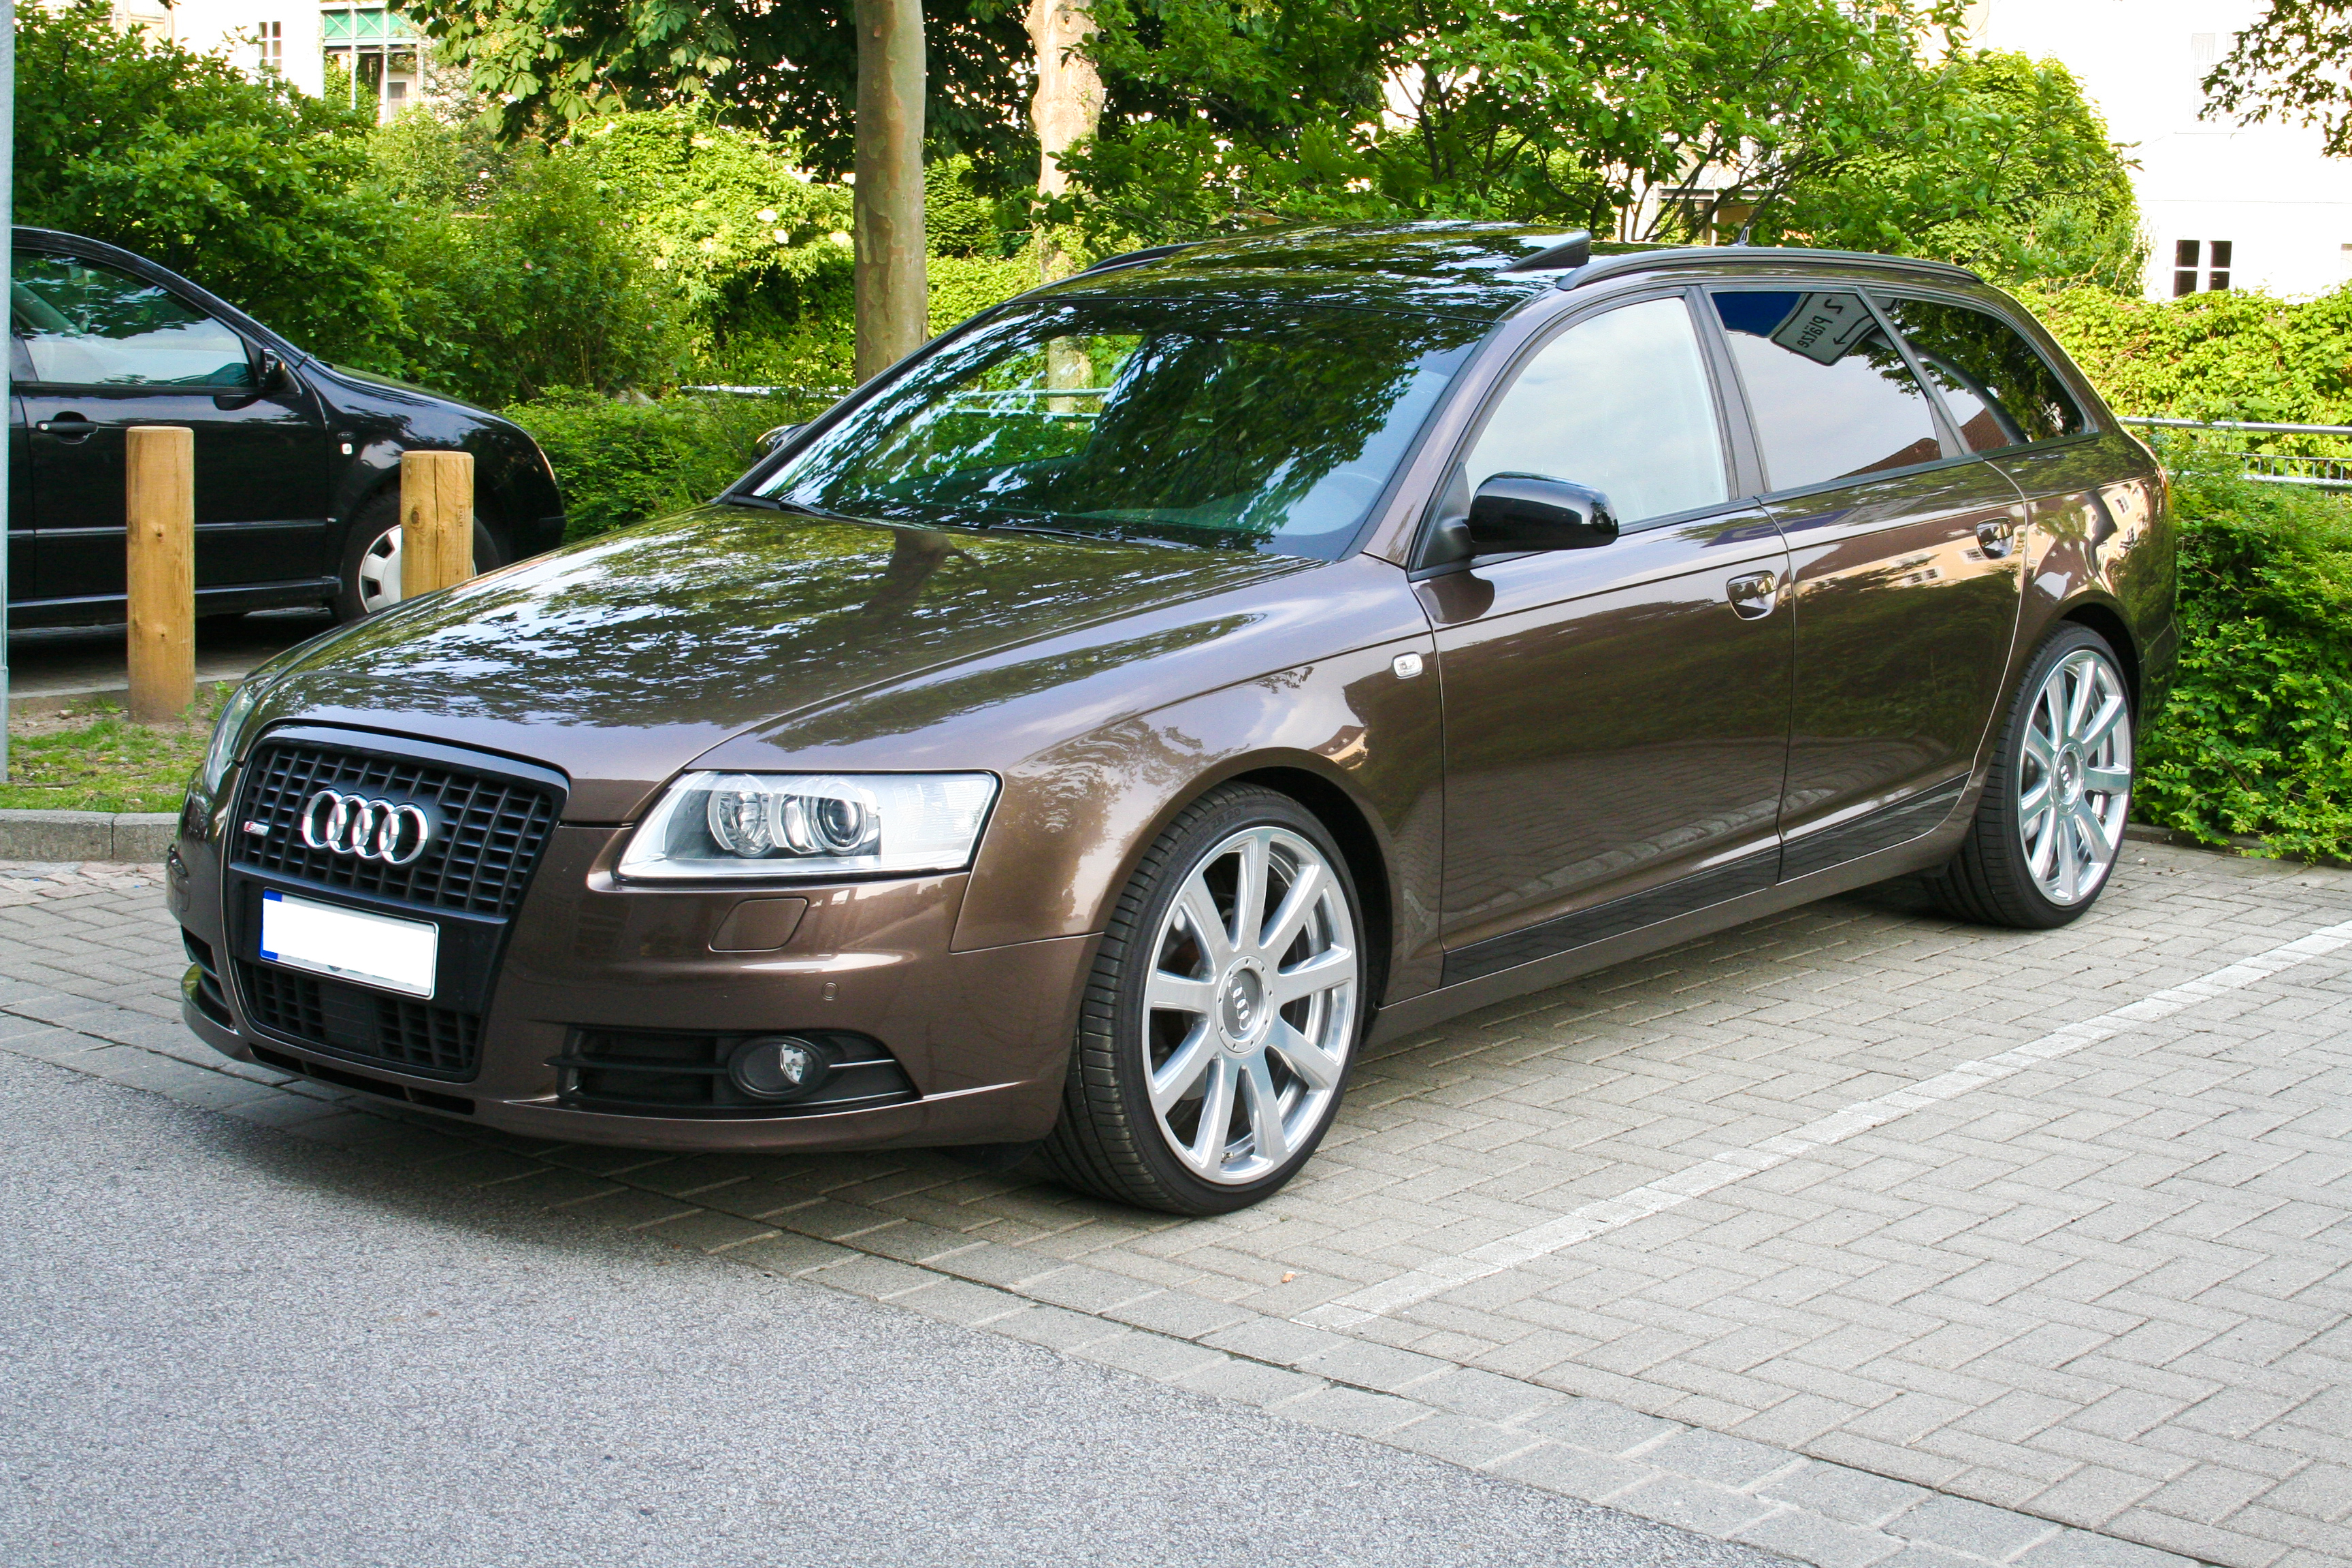 2012 audi a6 avant 4f c6 pictures information and specs auto. Black Bedroom Furniture Sets. Home Design Ideas